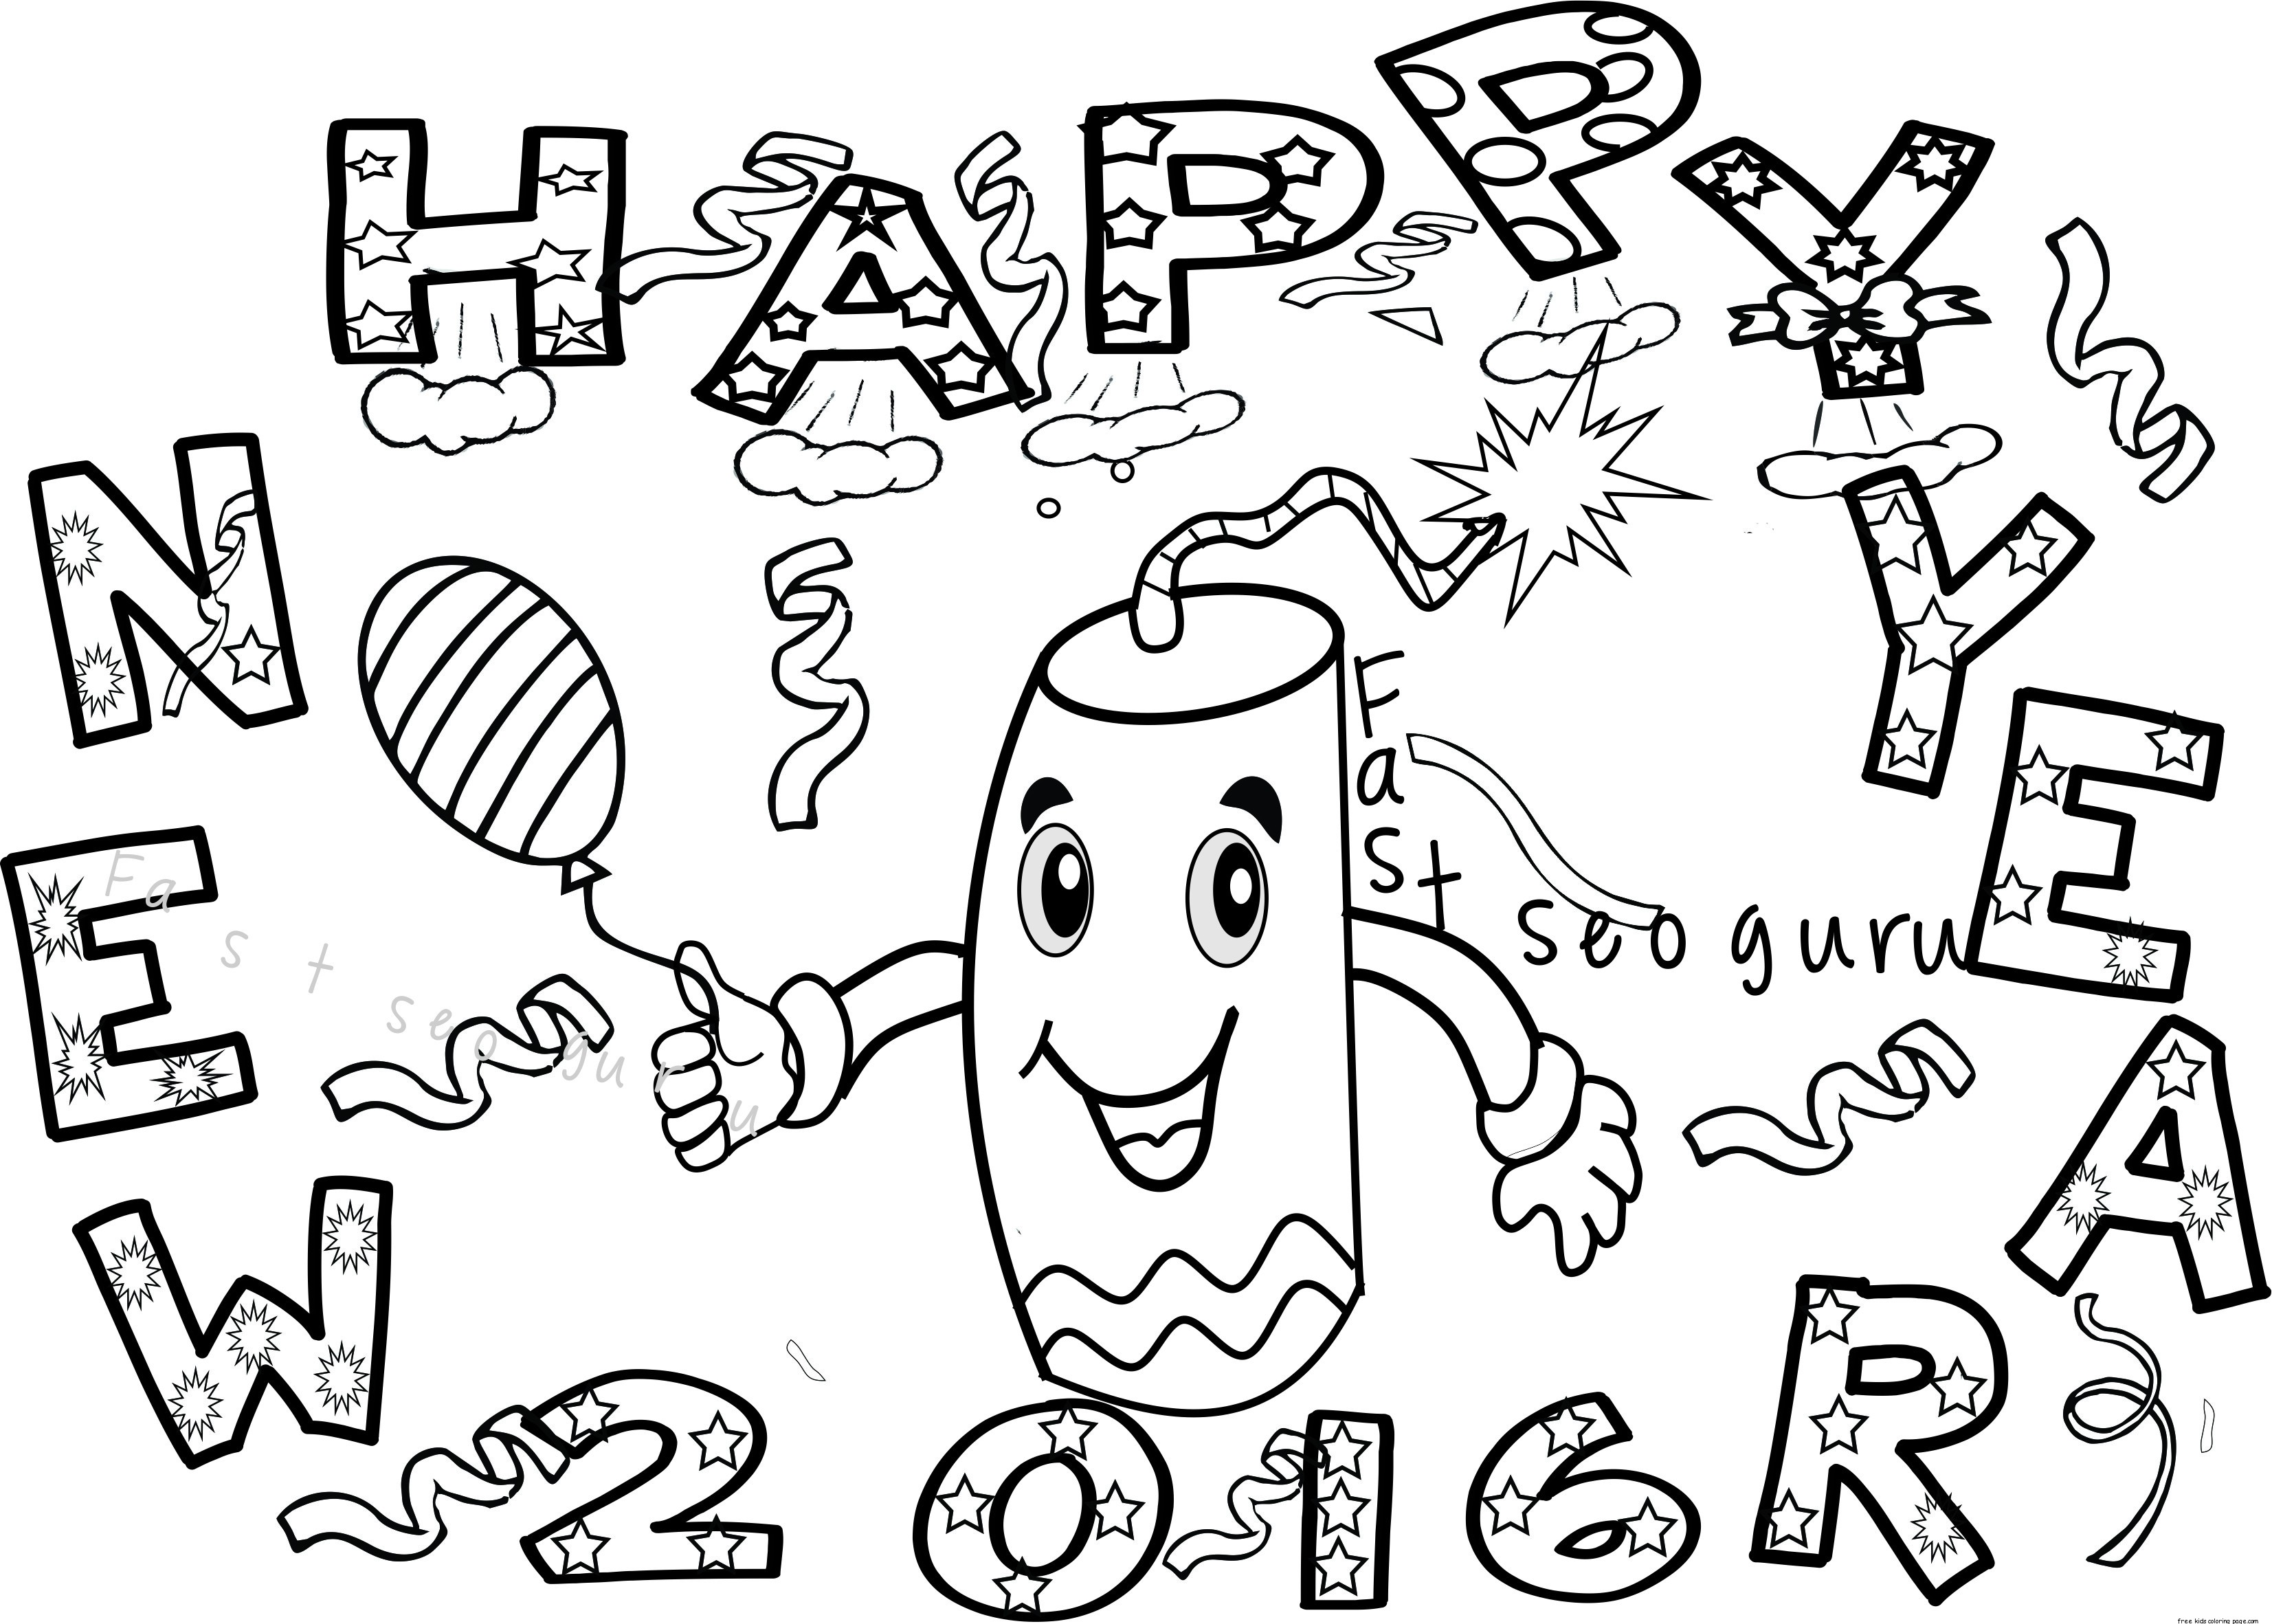 New Year Fireworks Coloring Pages For Kids